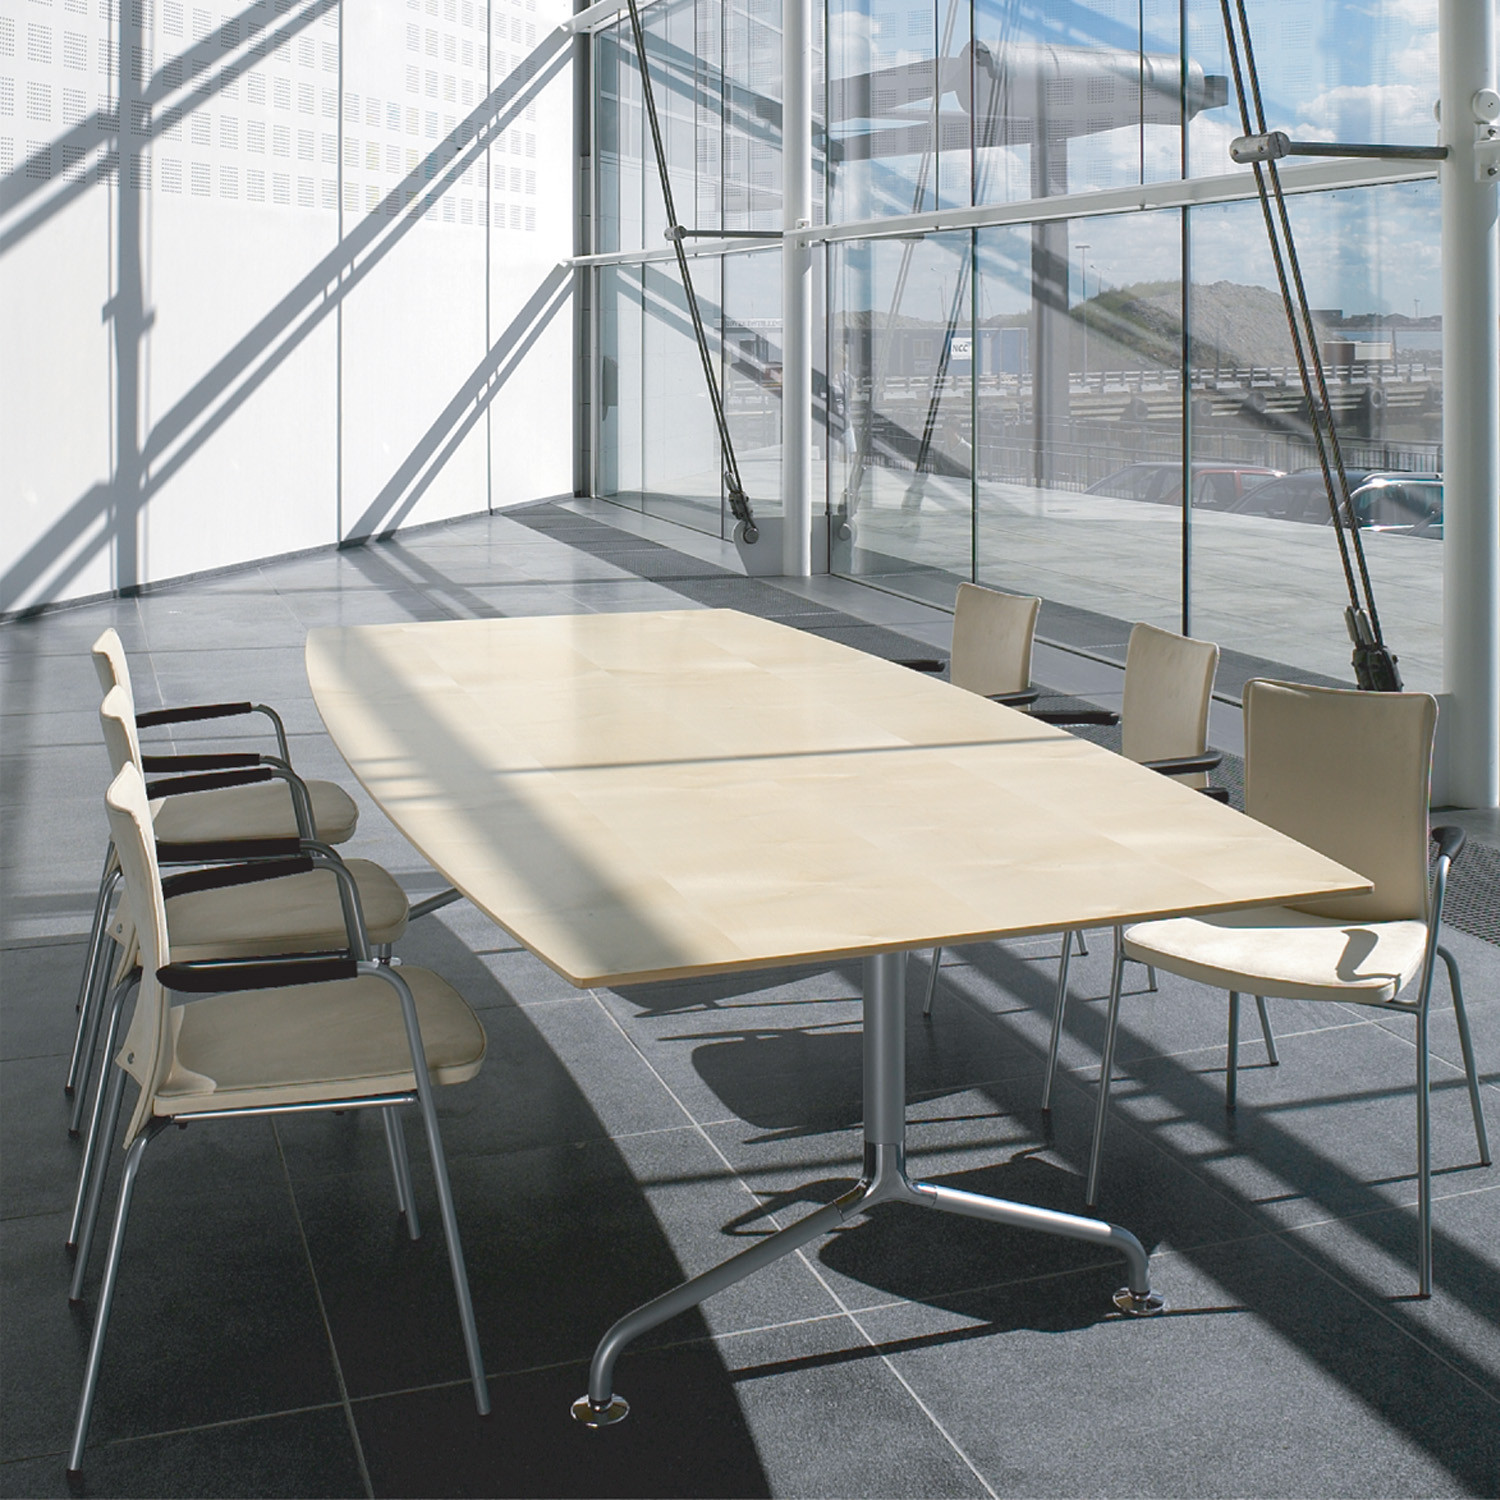 Ono Meeting X Tables from Randers+Radius